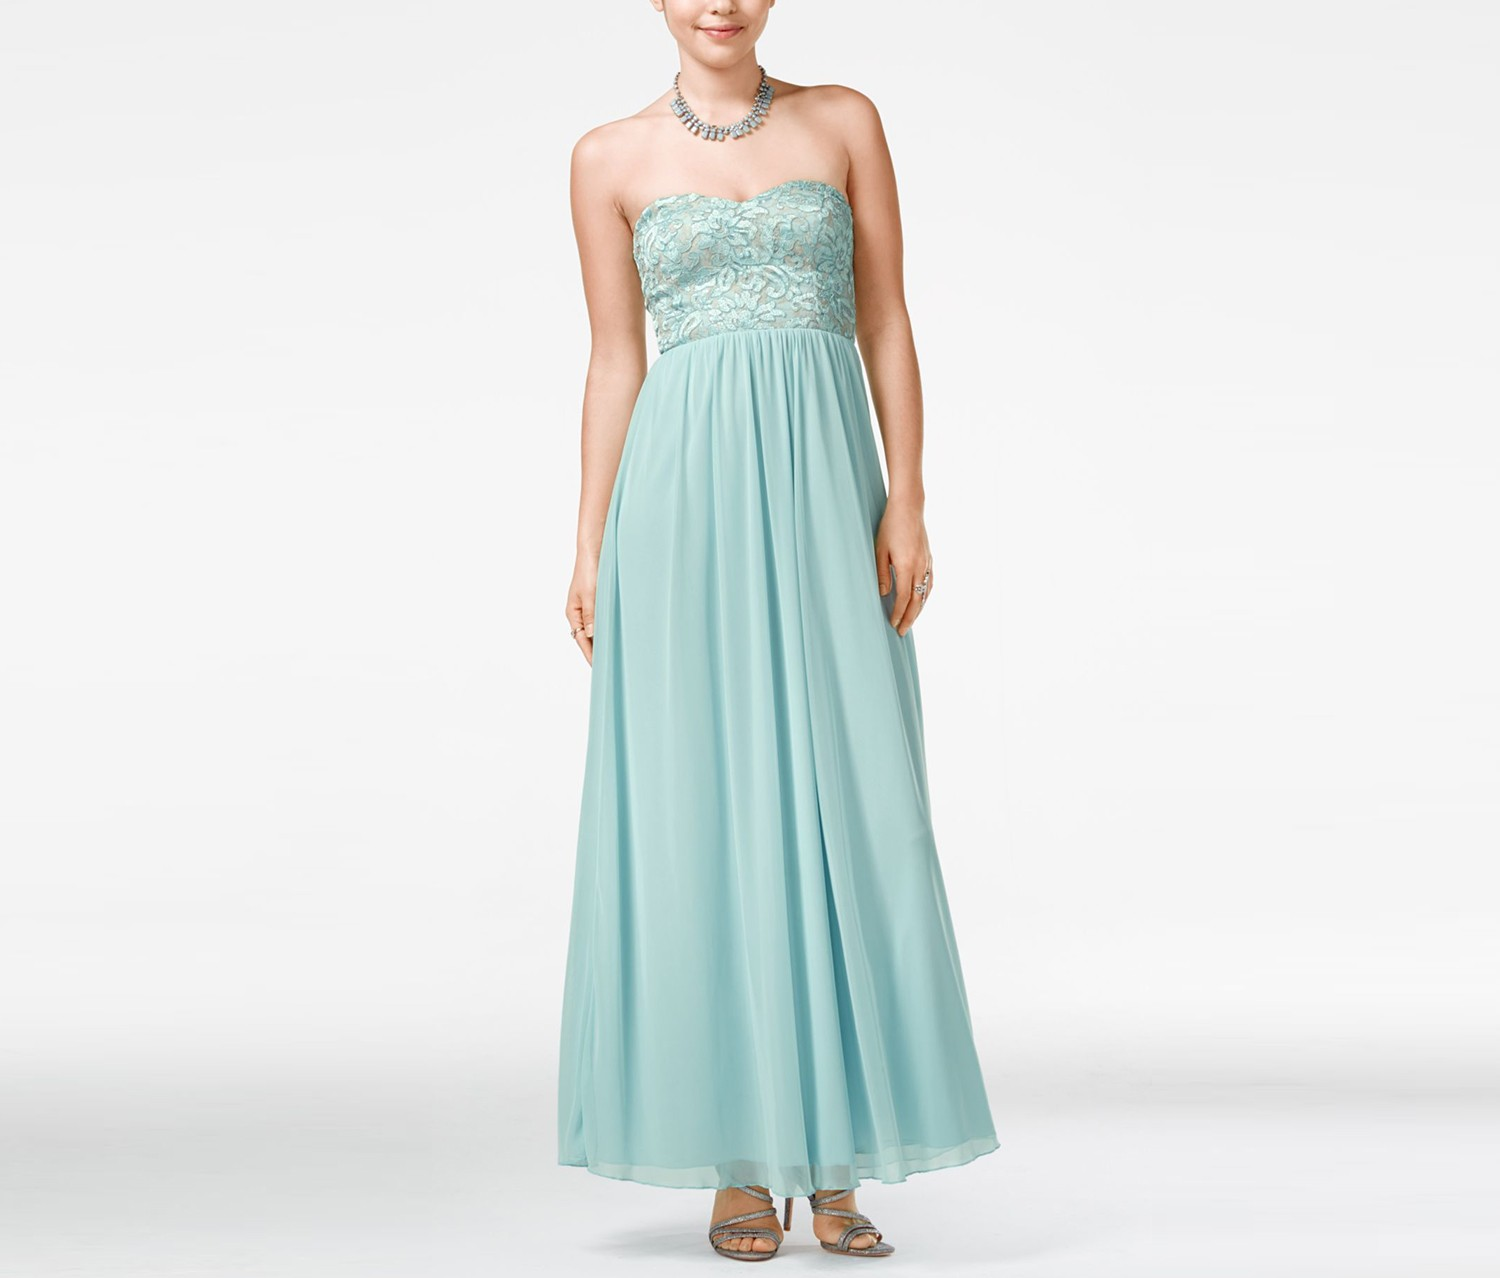 Speechless Strapless Lace Embellished, Antique Blue